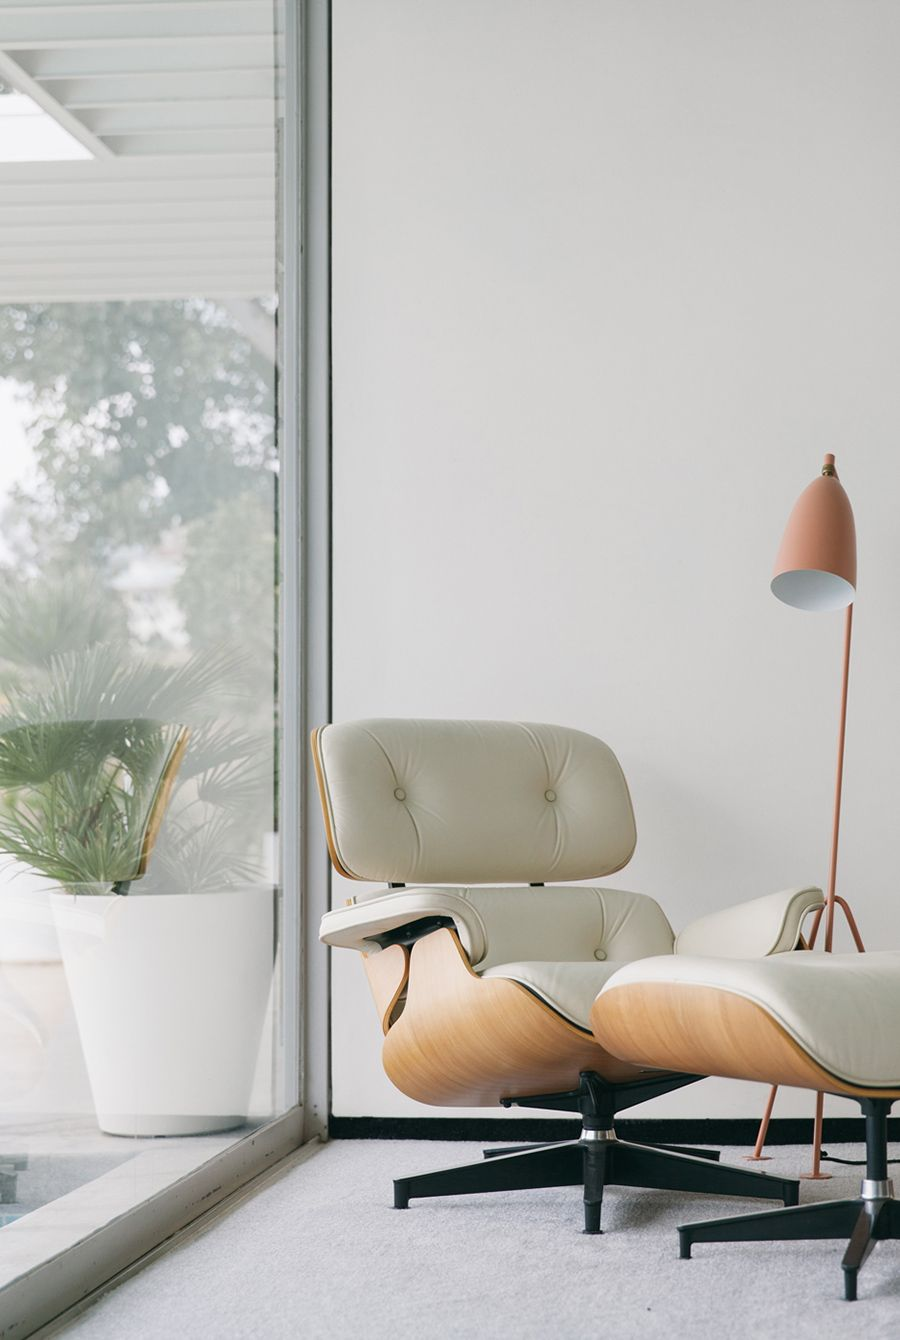 Eames Lounge Chair And Ottoman.